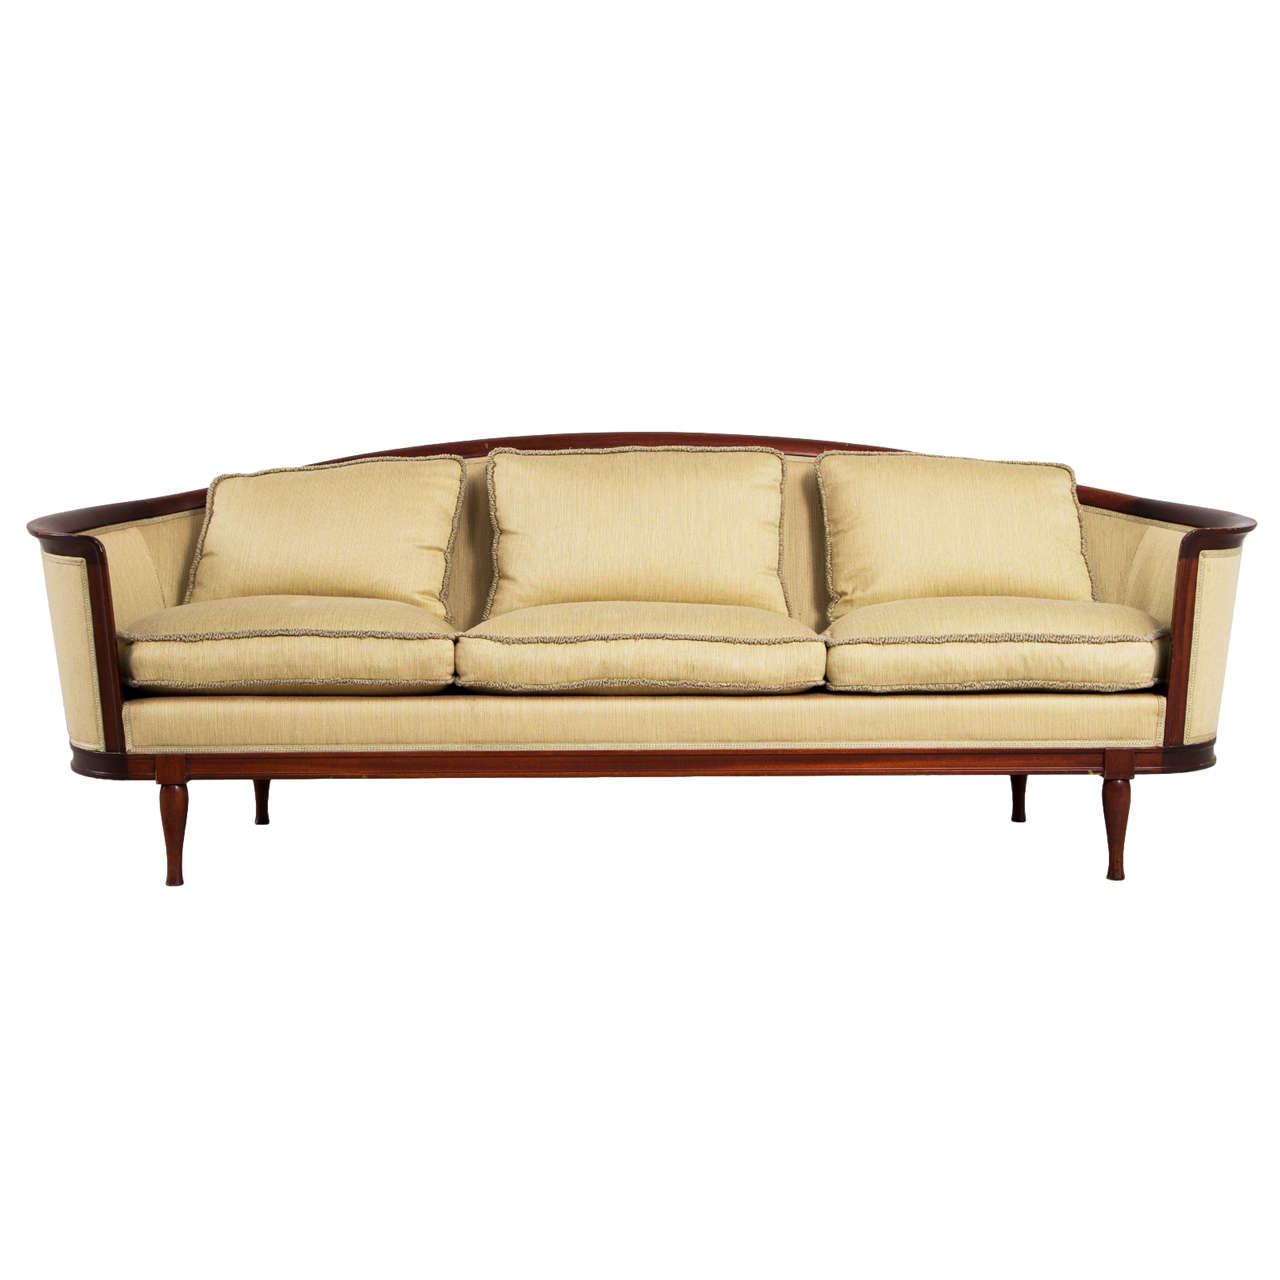 resin lounge chair discount patio cushions elegantly curved scandinavian sofa, 1930s at 1stdibs